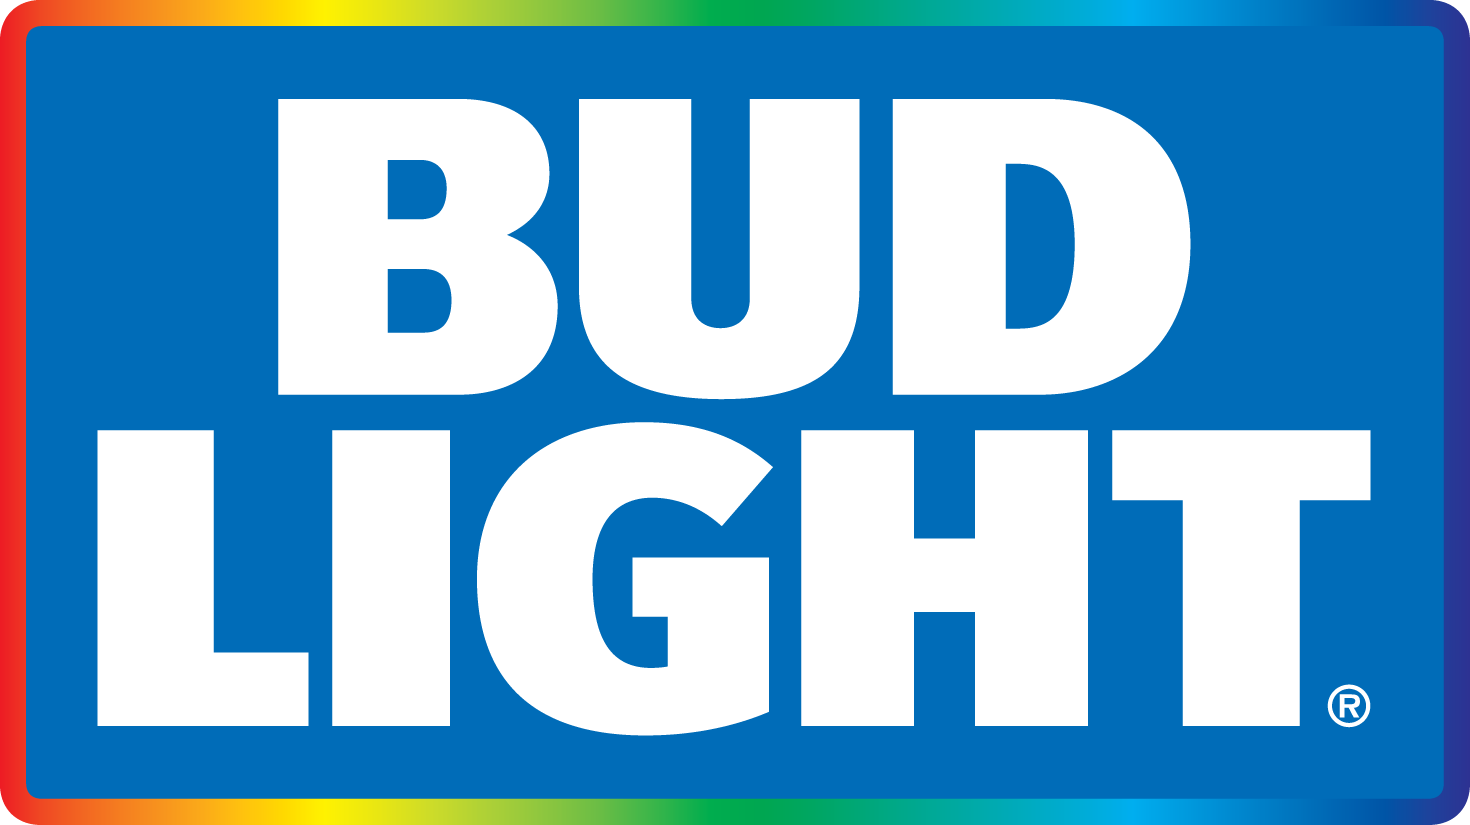 Bud Light is a proud sponsor of the 2018 Harvey Milk Festival